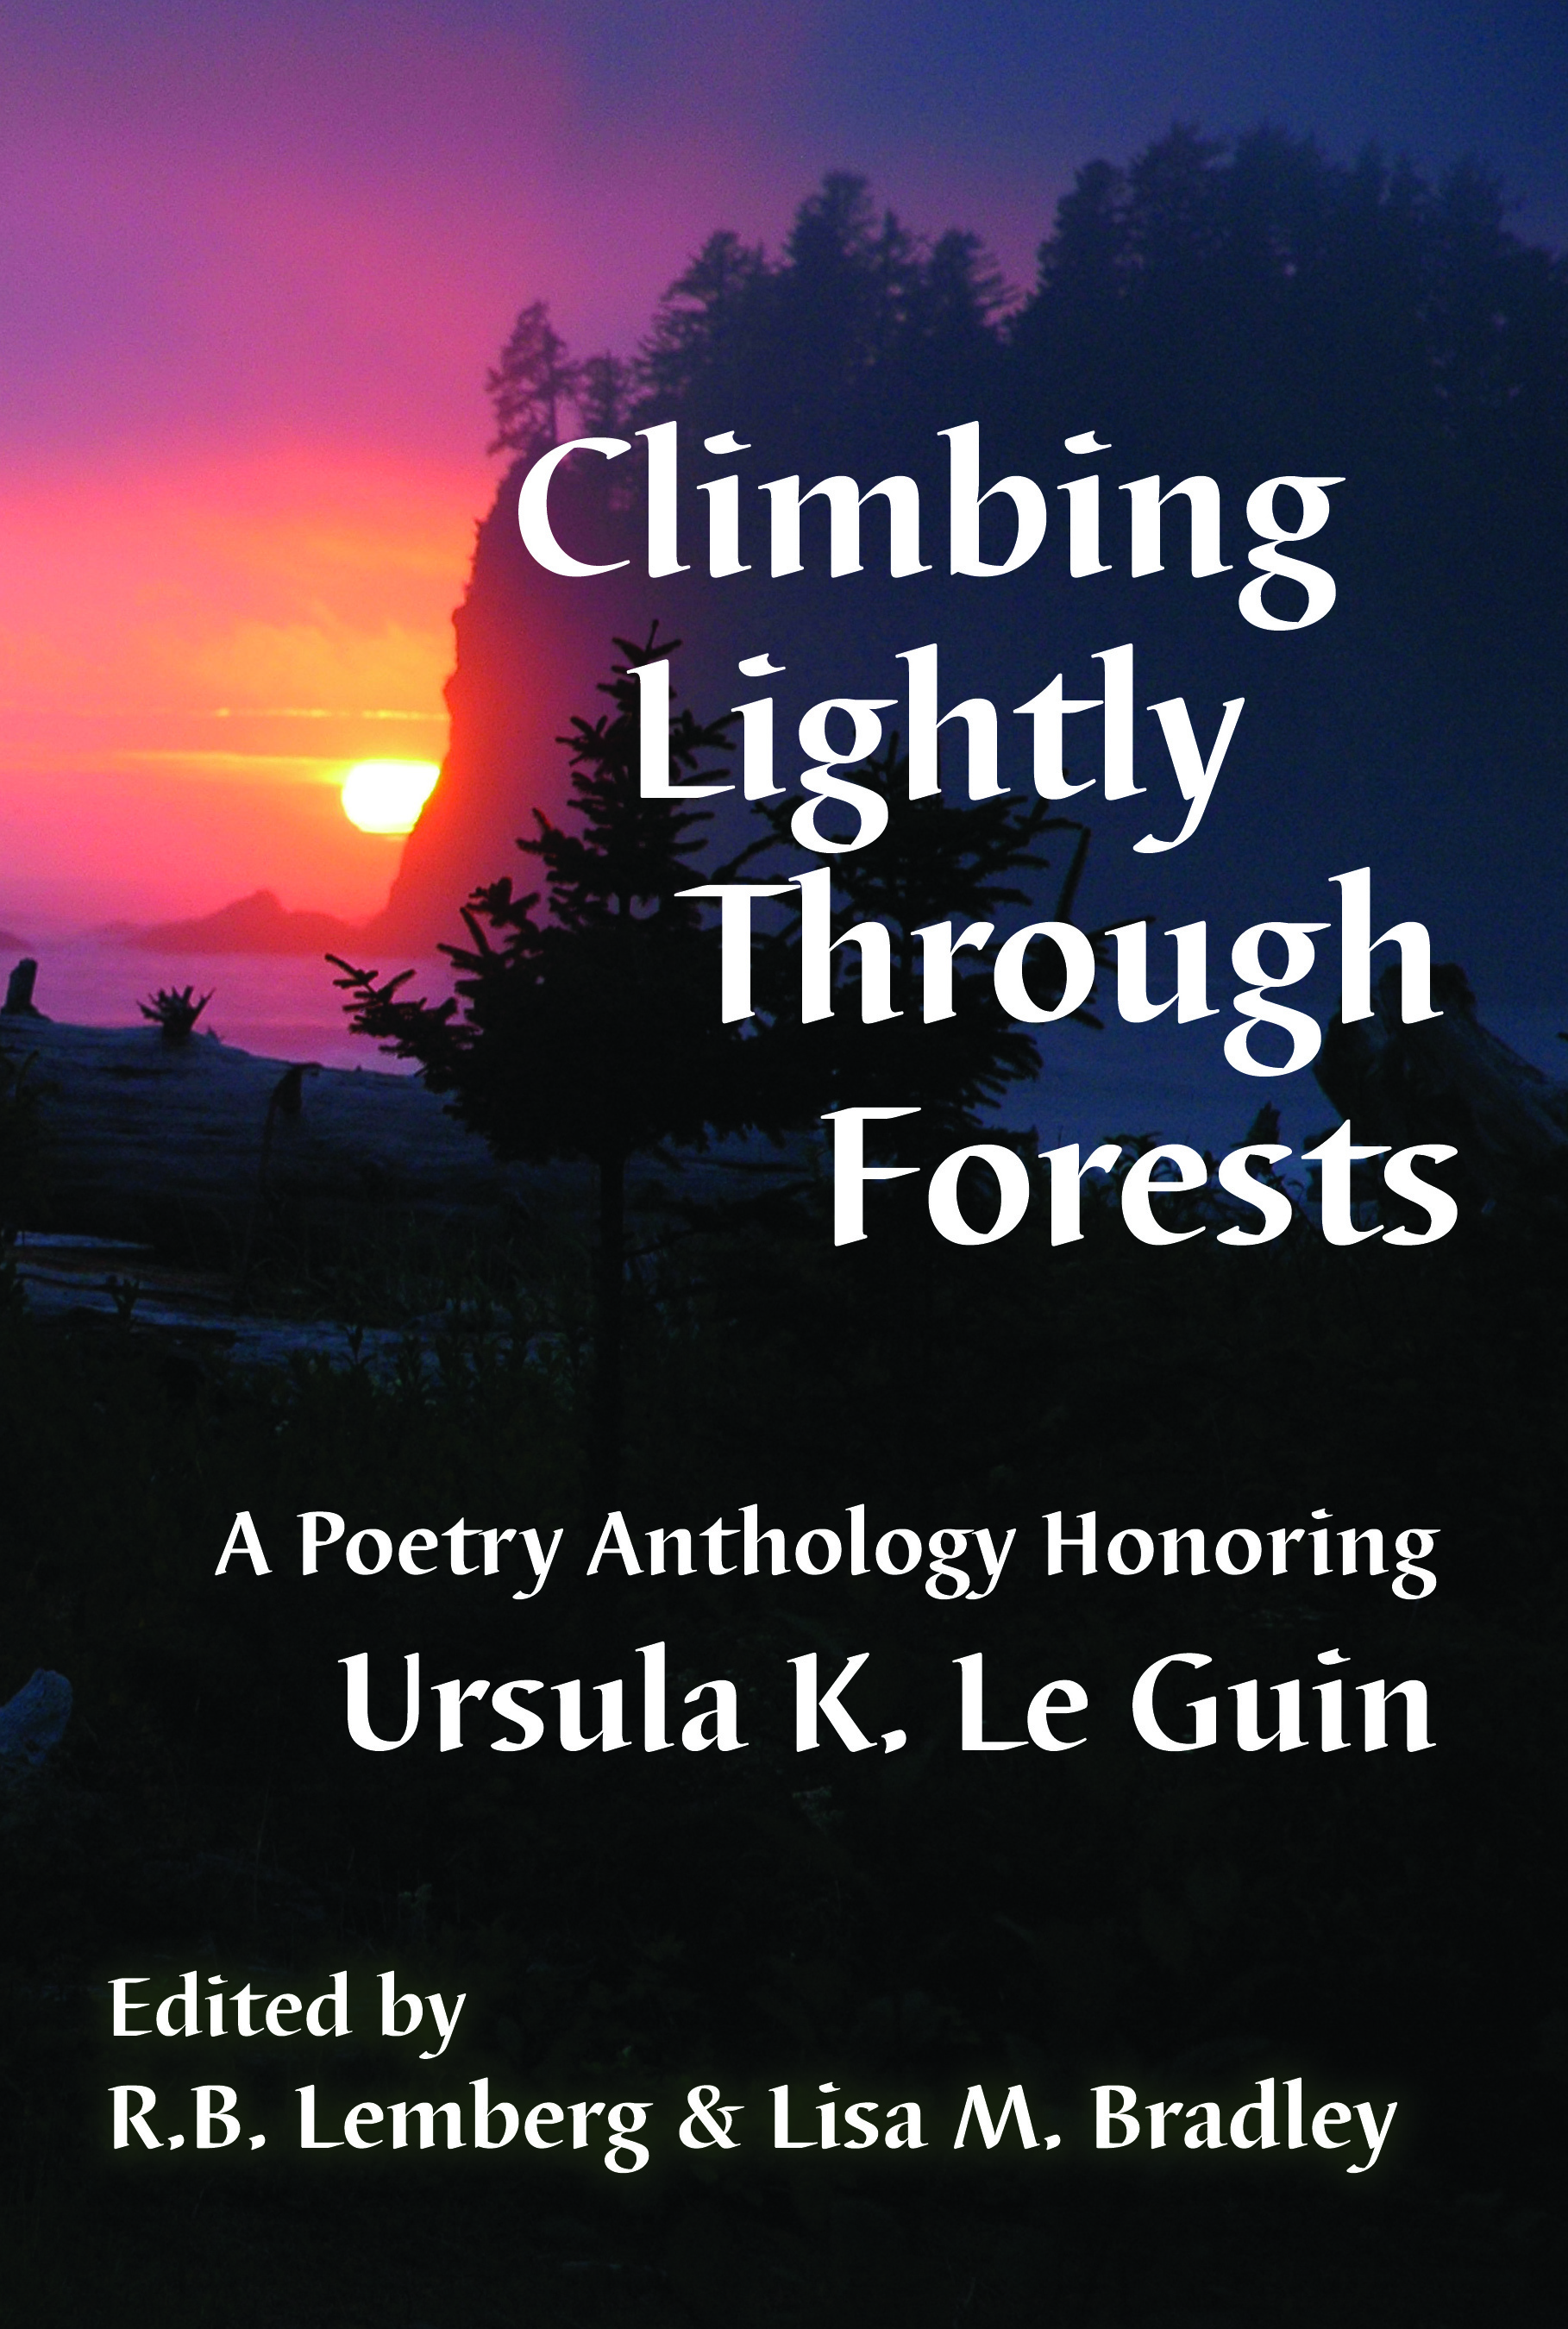 Cover image of Climbing Lightly Through Forests, featuring a dark mountain forest cutting against a sunrise.